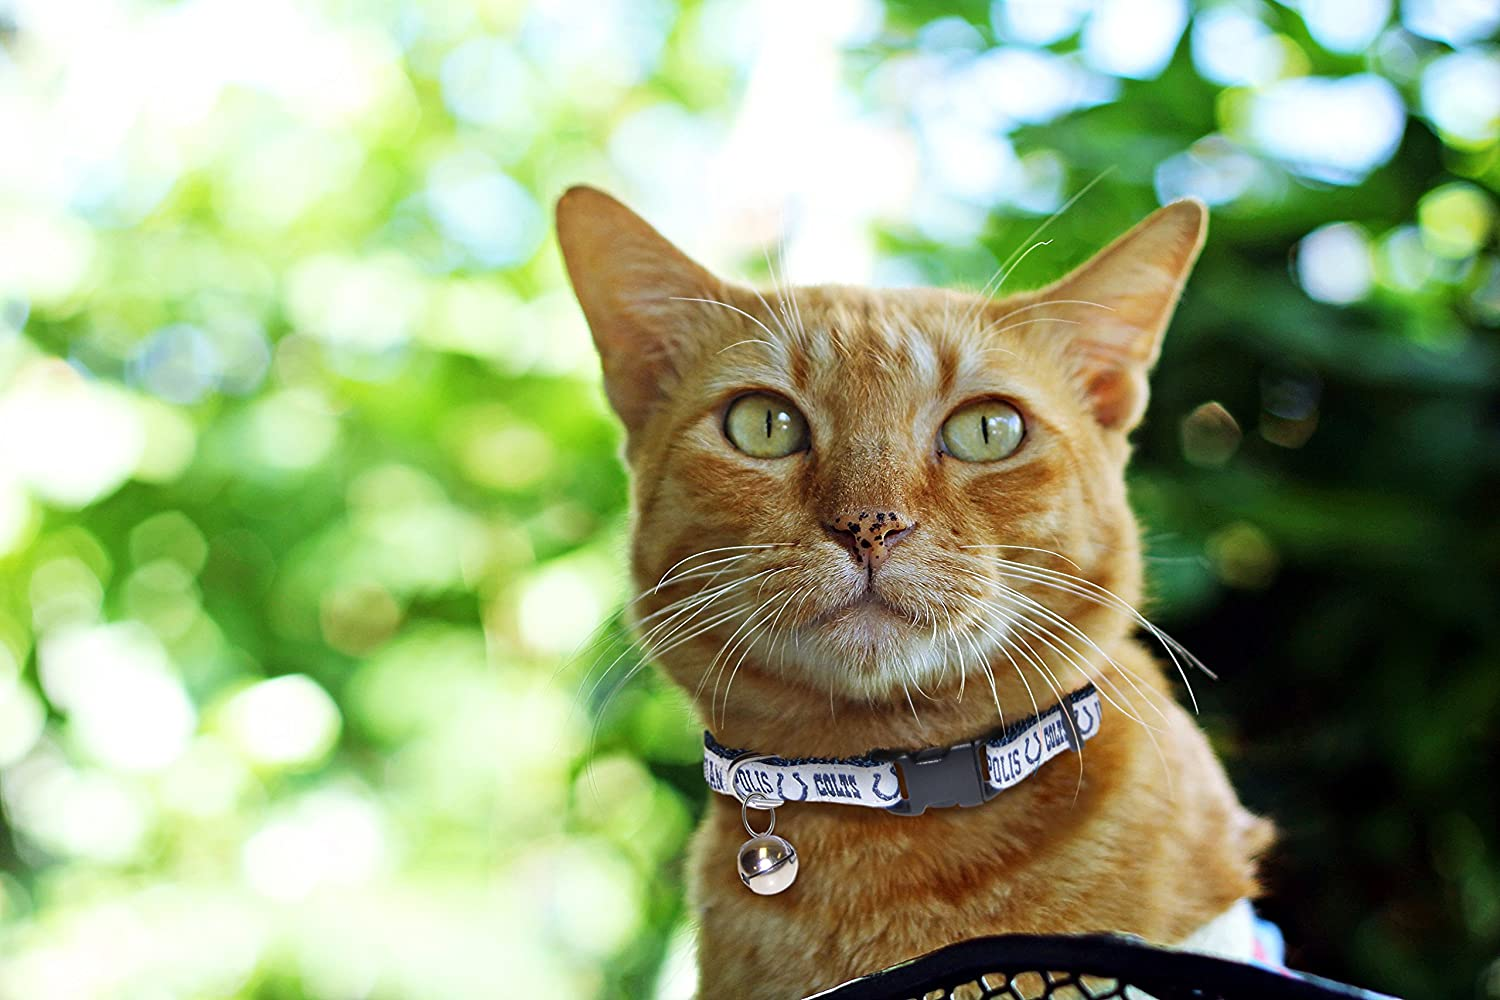 Pets First NFL CAT Collar Strong /& Adjustable Football Cat Collars with Metal Jingle Bell